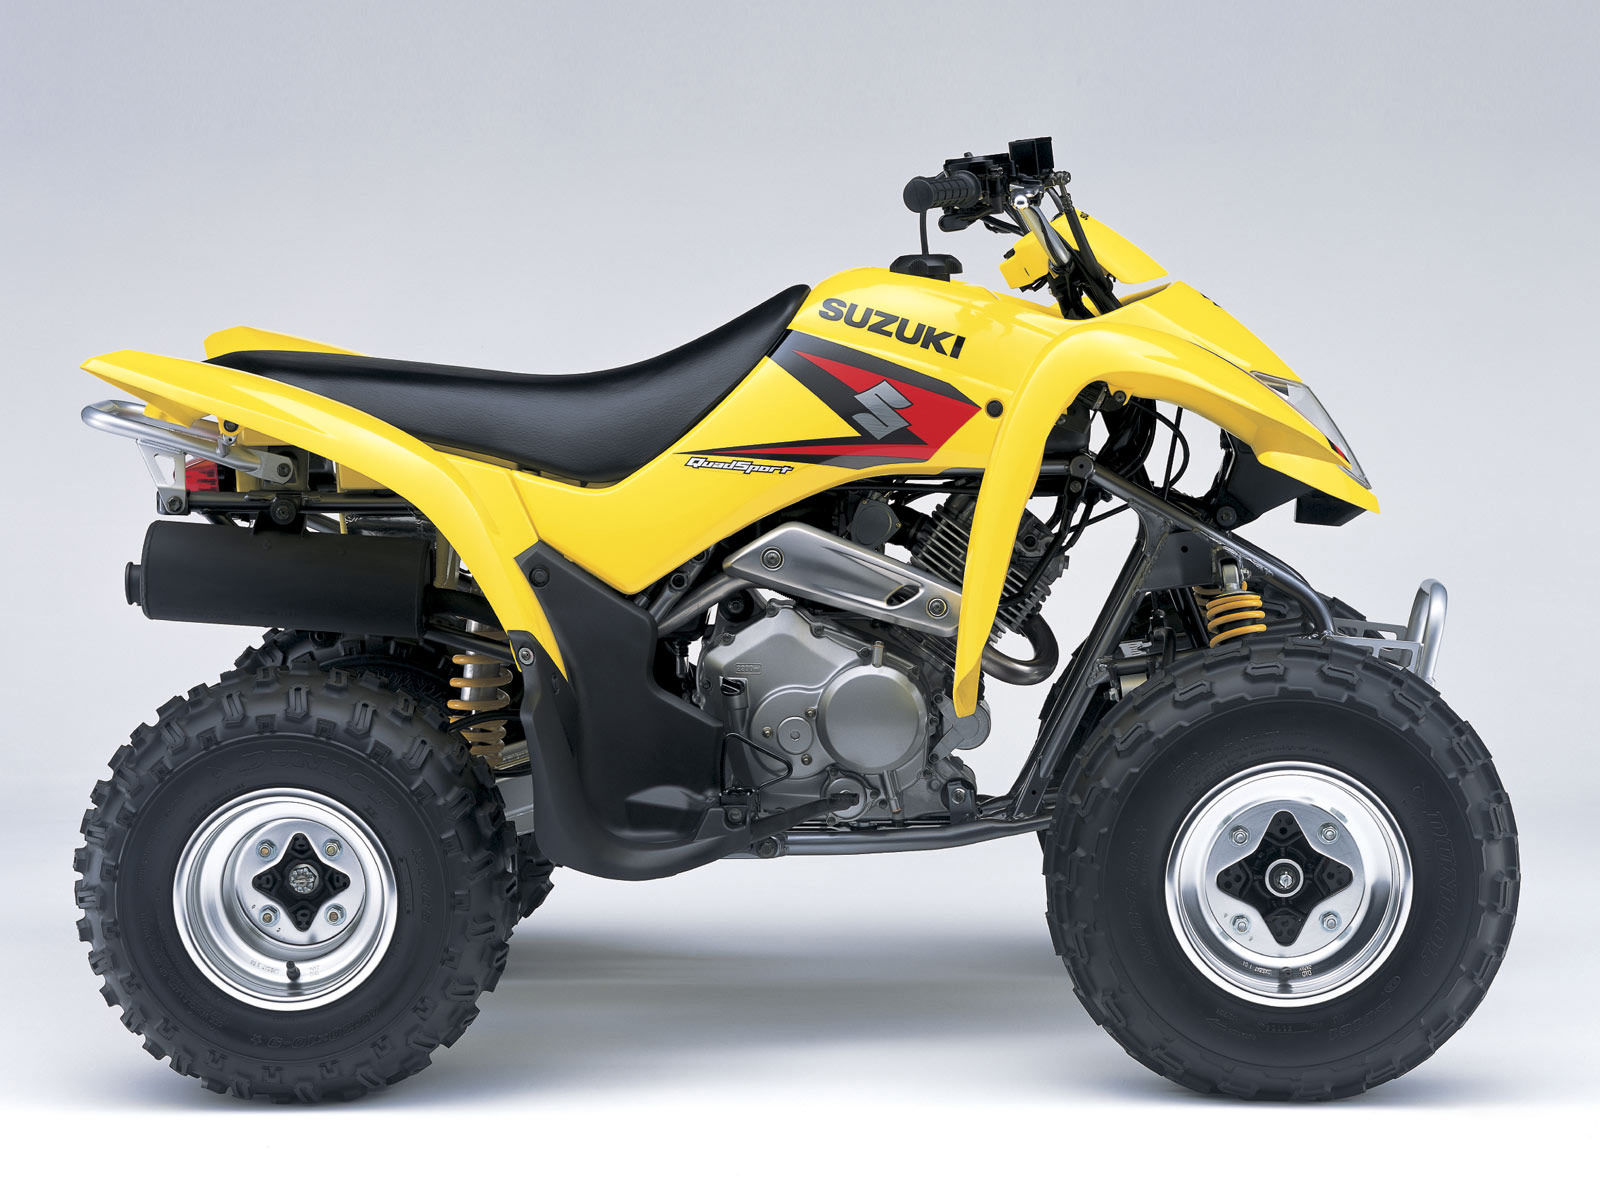 1986 SUZUKI LT250 LT 250 QUADRUNNER QUAD RUNNER - 4 SALE ON EBAY 7 ...